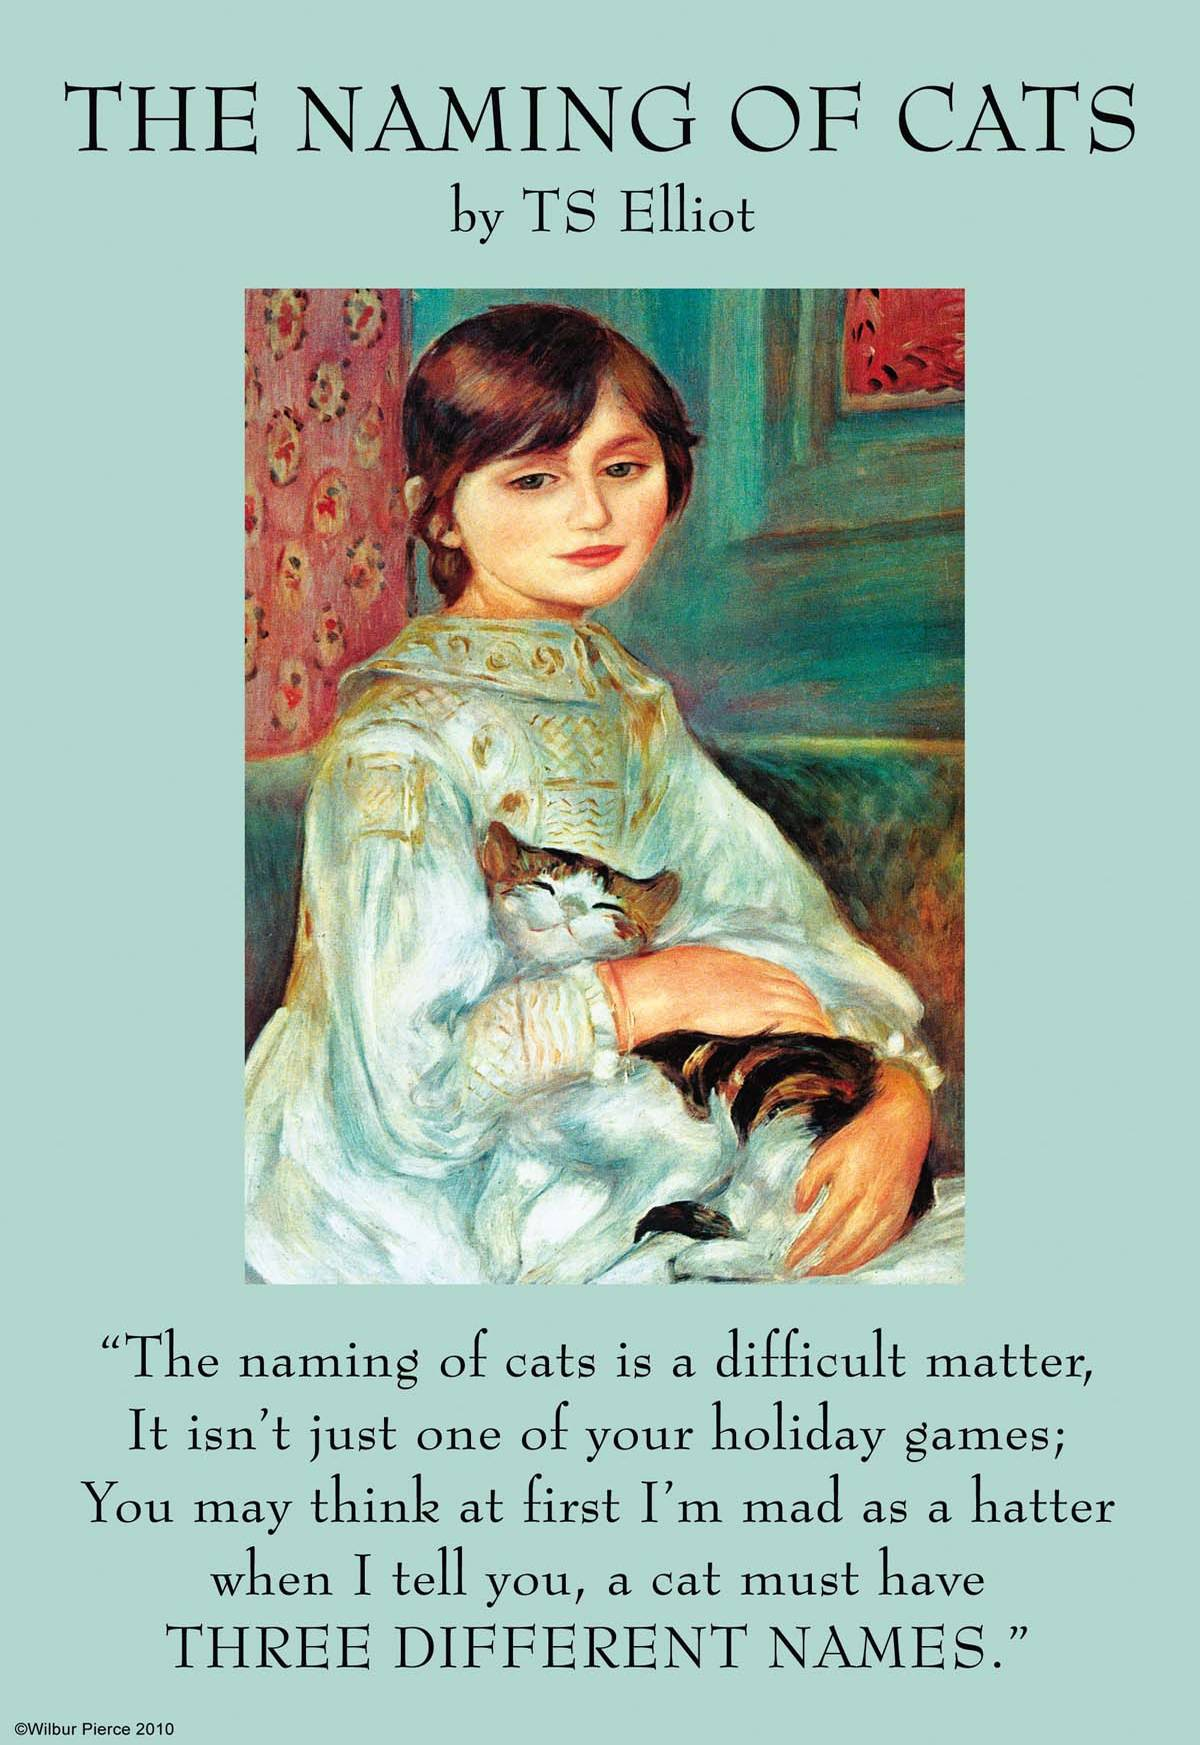 Vintage Book Cover Posters : The naming of cats posters and canvas art prints